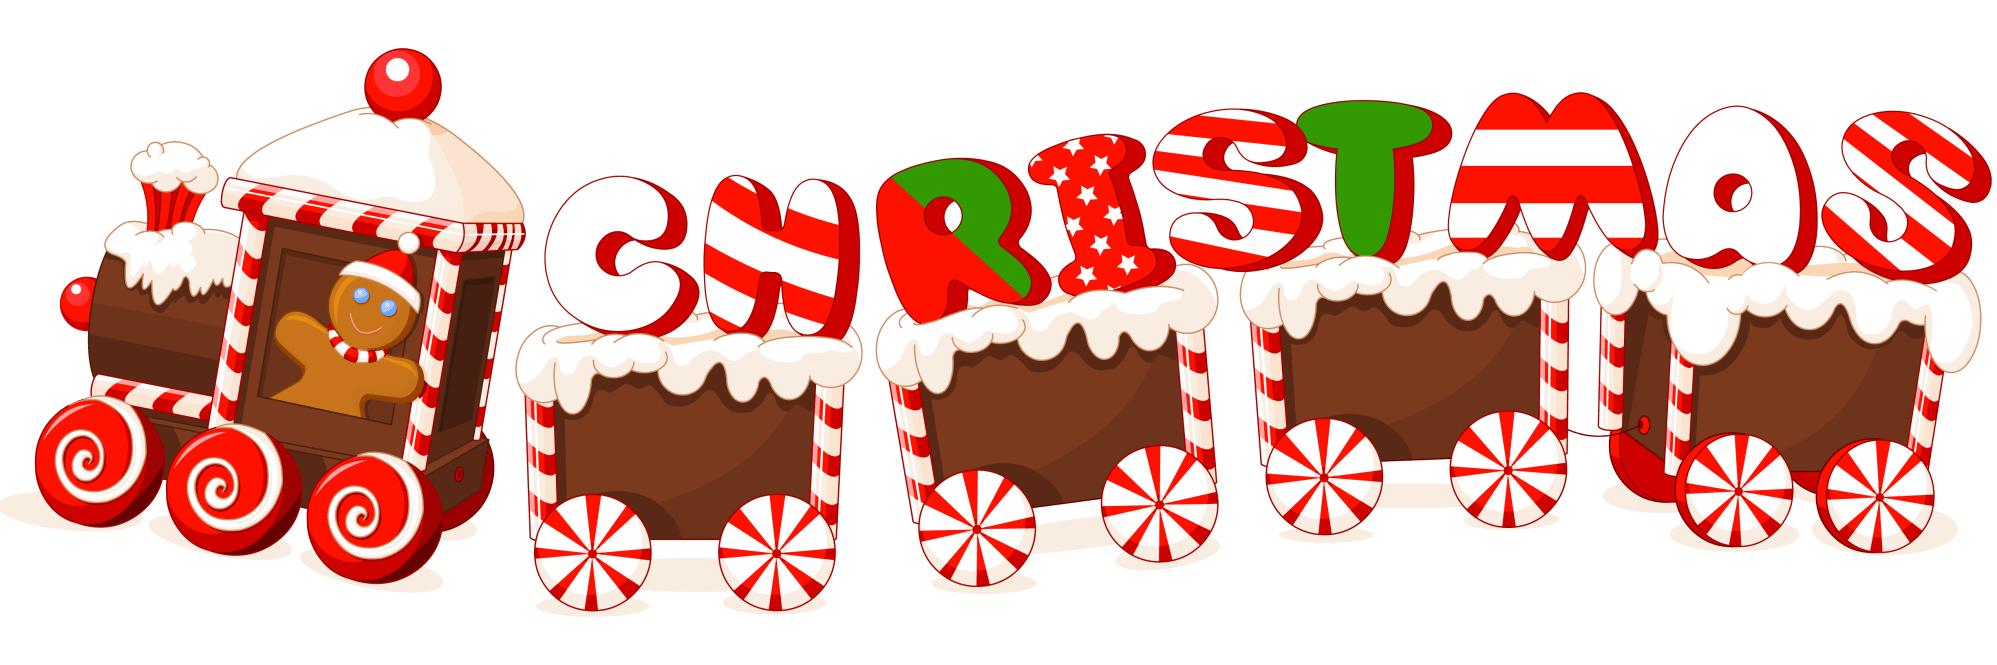 hight resolution of free christmas train clipart christmas